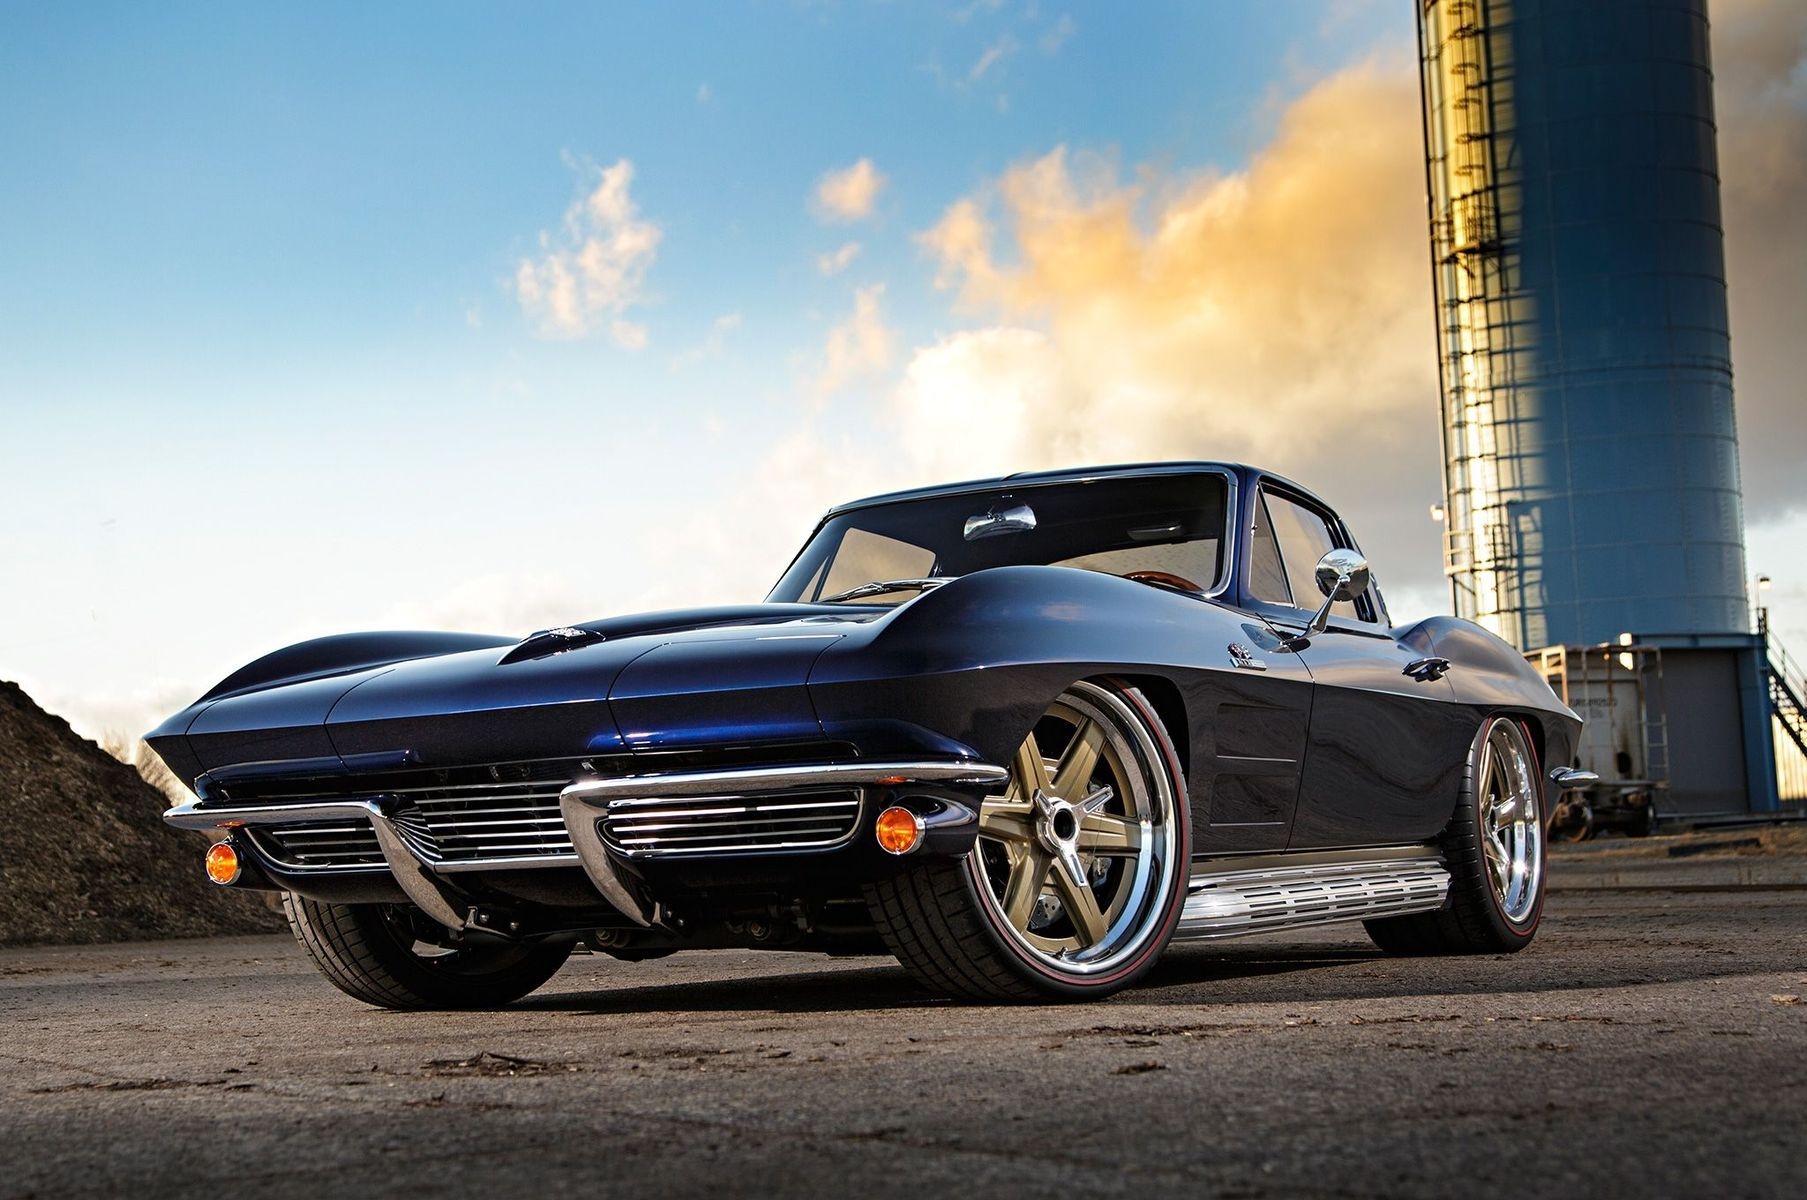 1964 Chevrolet Corvette | Barry B's Roadster Shop '64 Corvette Stingray on Center Locking Forgeline RS6 Wheels